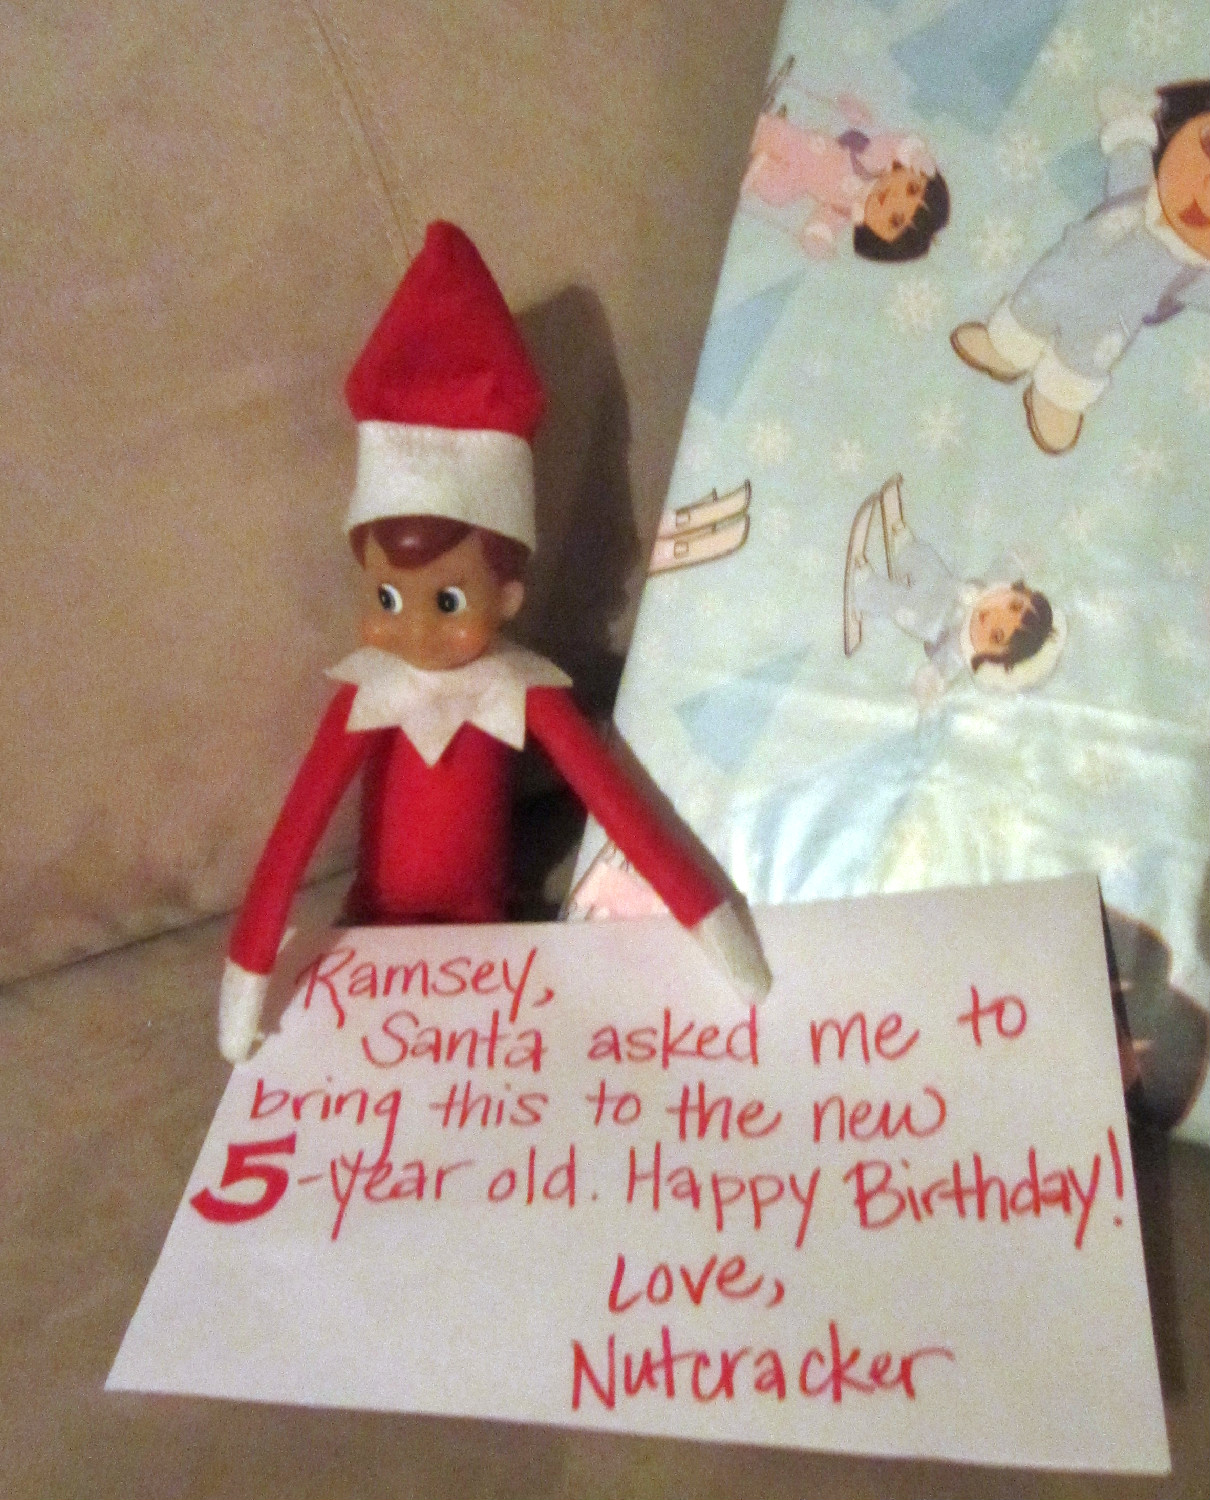 Lizzi's Creations: This Week In Elf On A Shelf #2